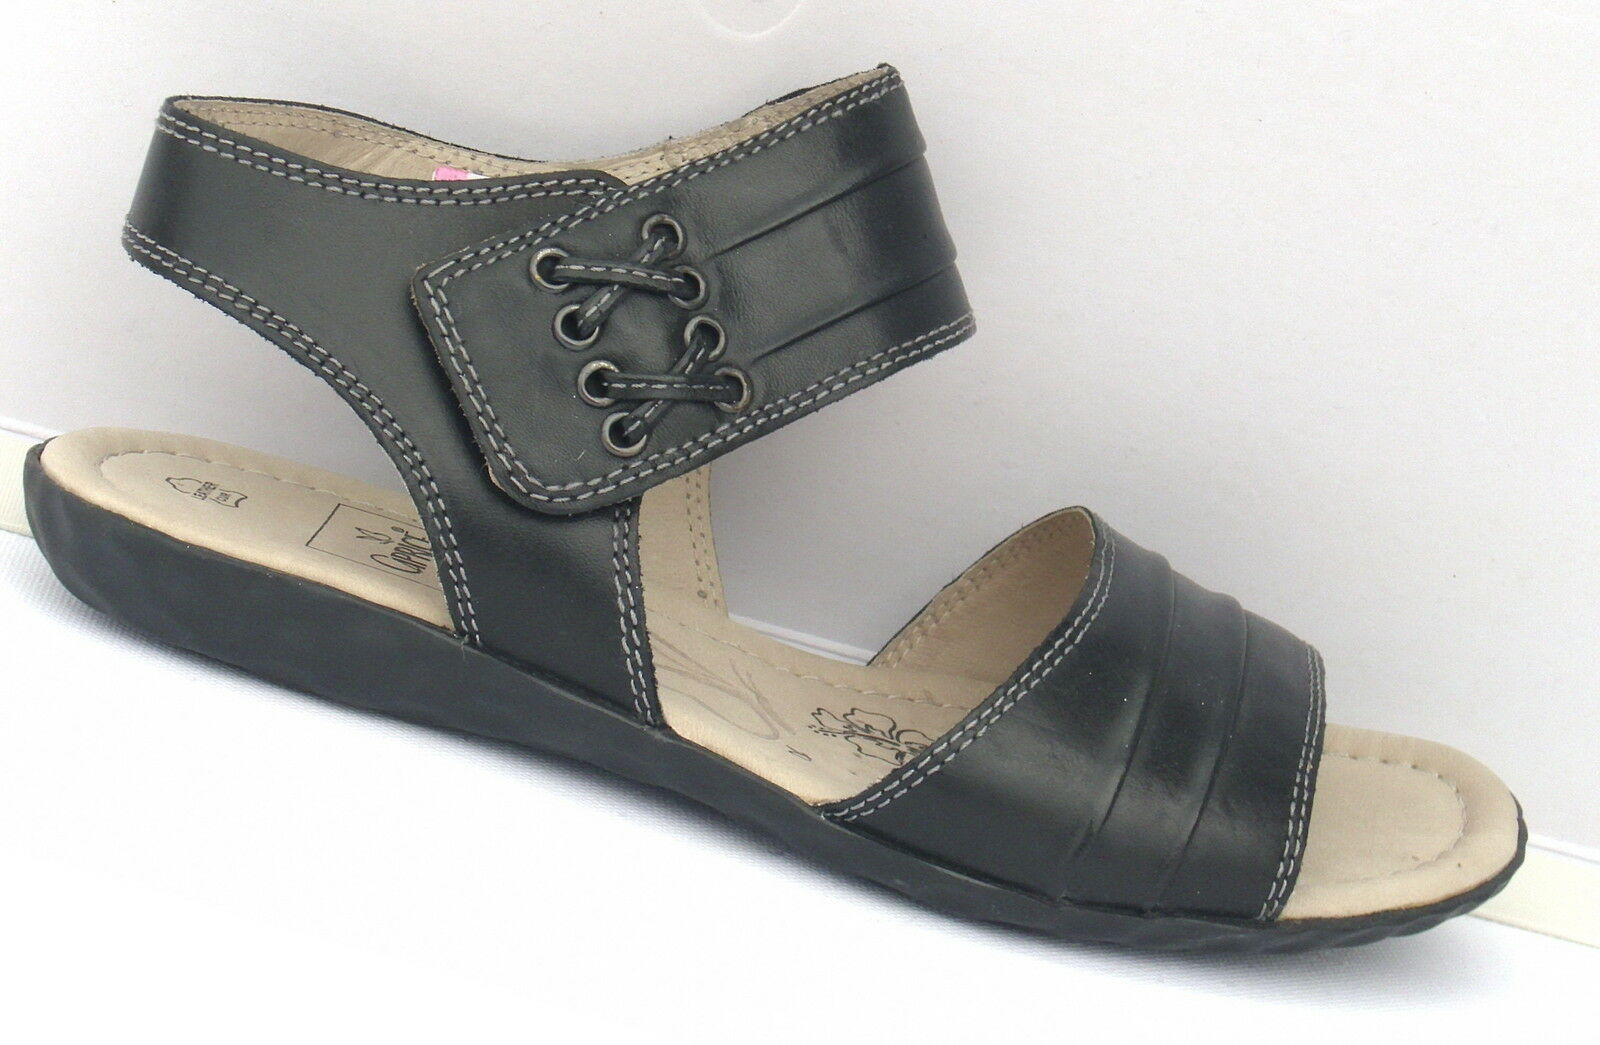 Caprice Chaussures Chaussures Femmes Sandales, Cuir, Taille 37-42, +++ NEUF +++